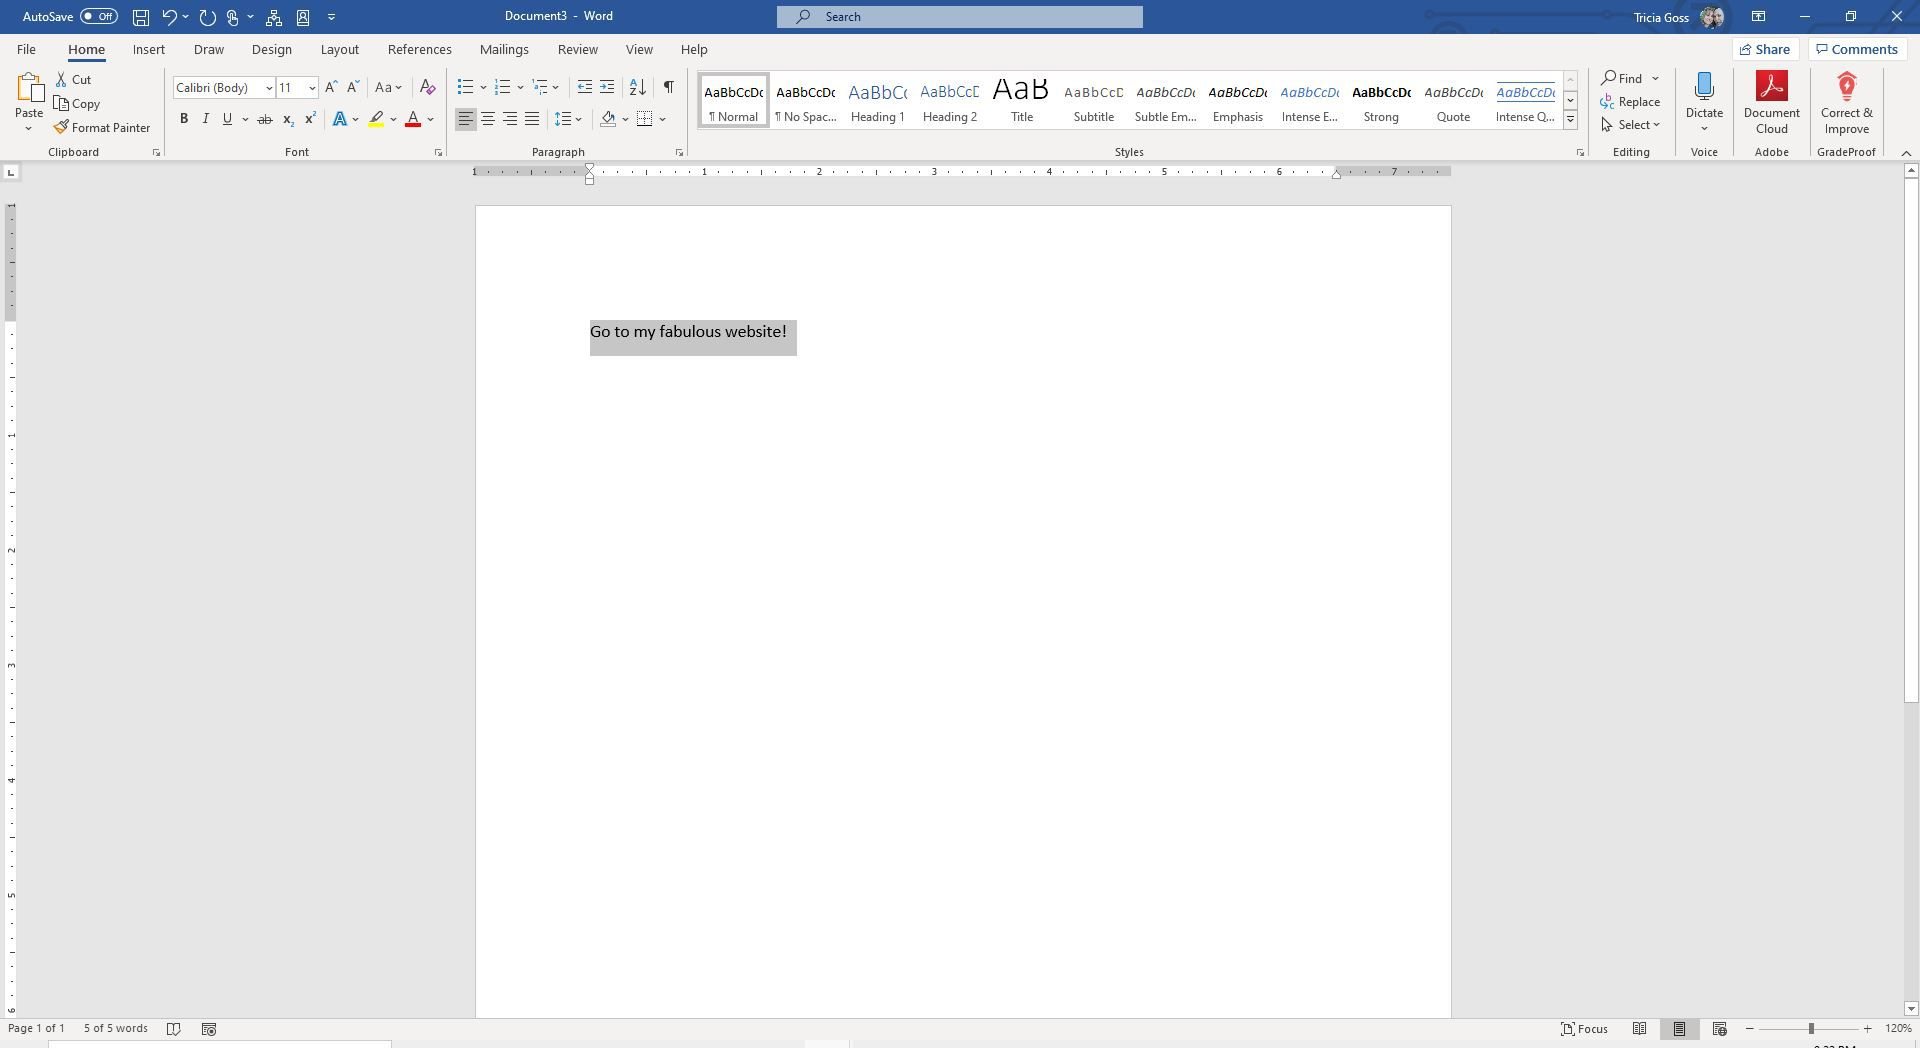 Screenshot of selected text in Word